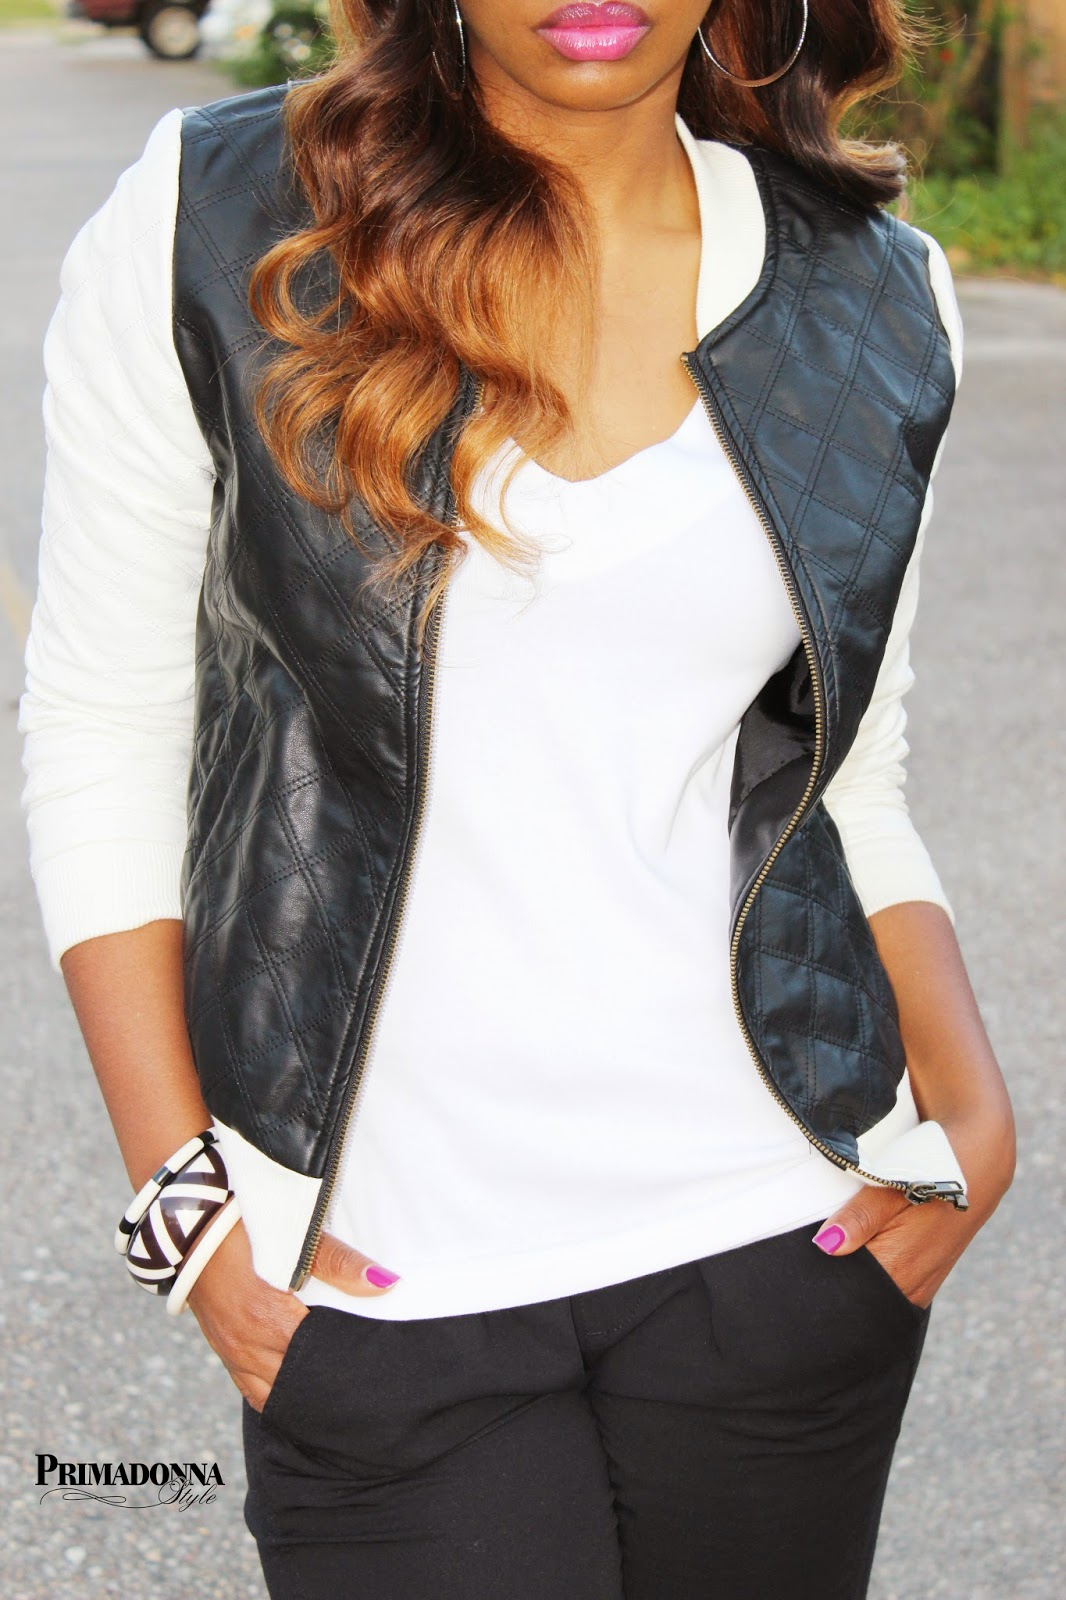 How to wear what to wear with black and white